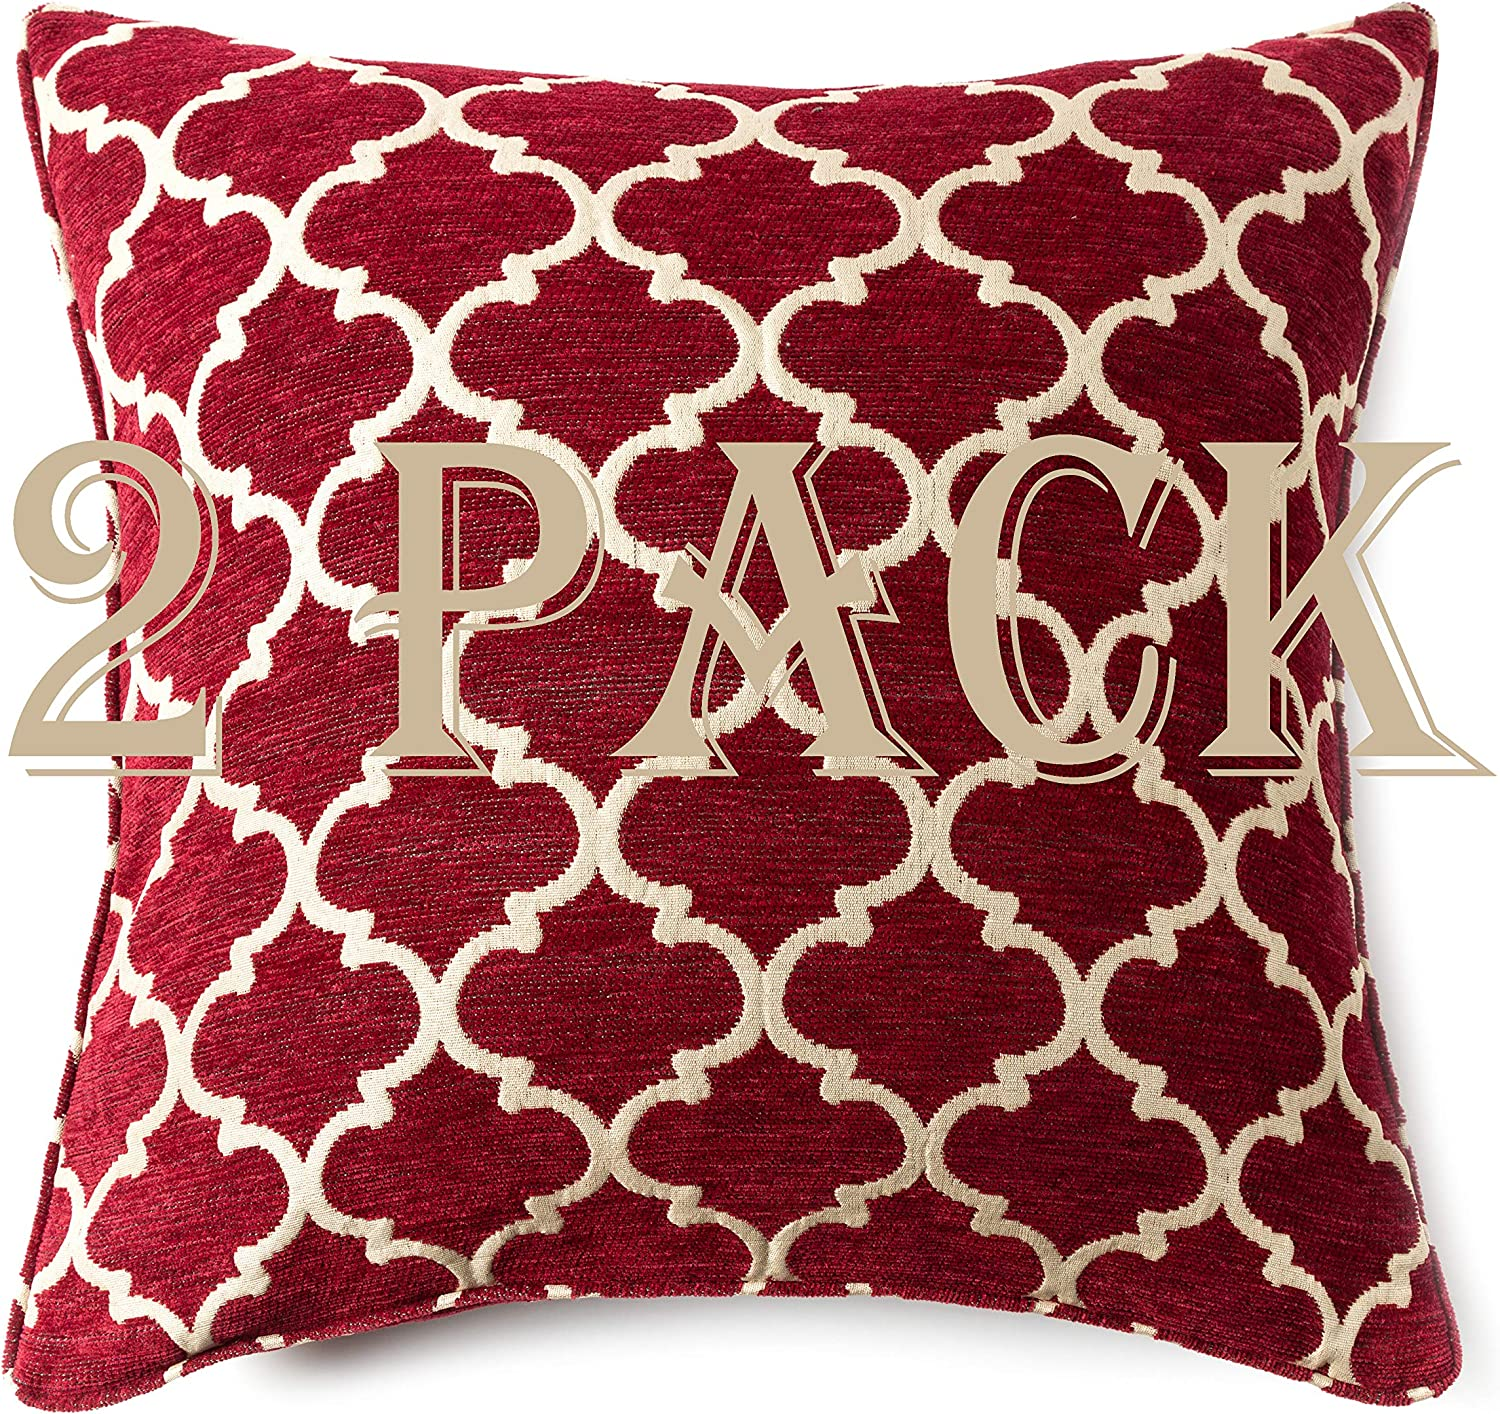 "Randall Geometric Throw Pillow Covers 20"" x 20"" Diamond-Pattern Cozy Cushion Covers for Modern Decoration Room Bedroom Sofa Chair Car- 2 Pack, Red"